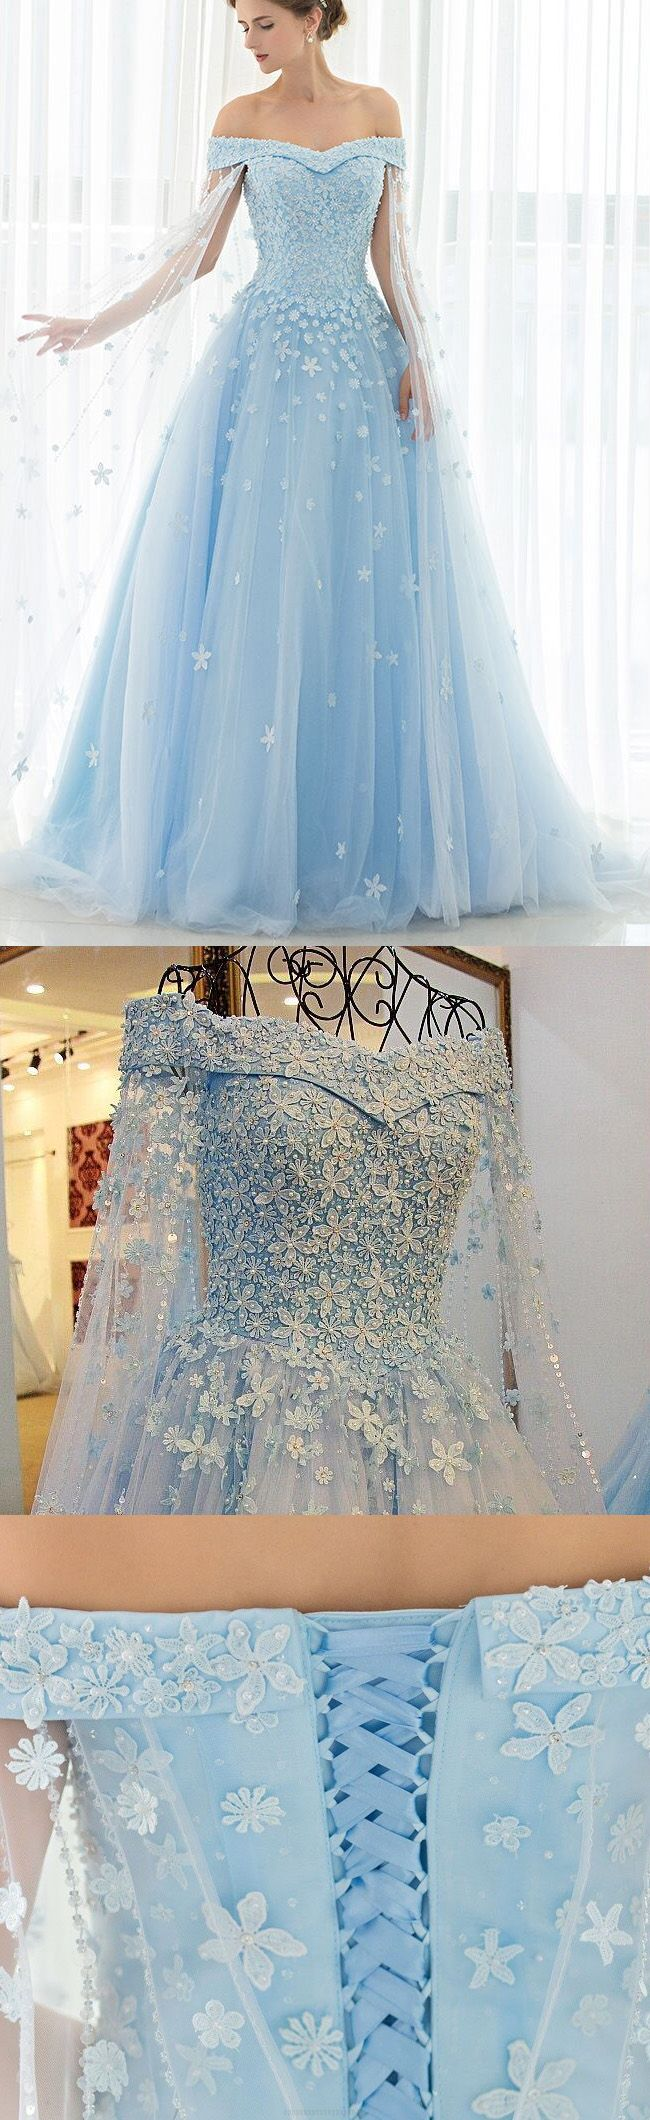 Long Prom Dresses 2017, Blue Prom Dresses 2017, Prom Dresses 2017, Blue Prom Dresses, Long Prom Dresses, Long Blue Prom Dresses, 2017 Prom Dresses, Prom Dresses Long, Princess Prom Dresses, A Line dresses, Light Blue dresses, Princess Evening Dresses, Light Blue A line Evening Dresses, A line Long Evening Dresses, Long Evening Dresses, Light Blue Evening Dresses, A-line/Princess Evening Dresses, Light Blue A-line/Princess Evening Dresses, A-line/Princess Long Evening Dresses,